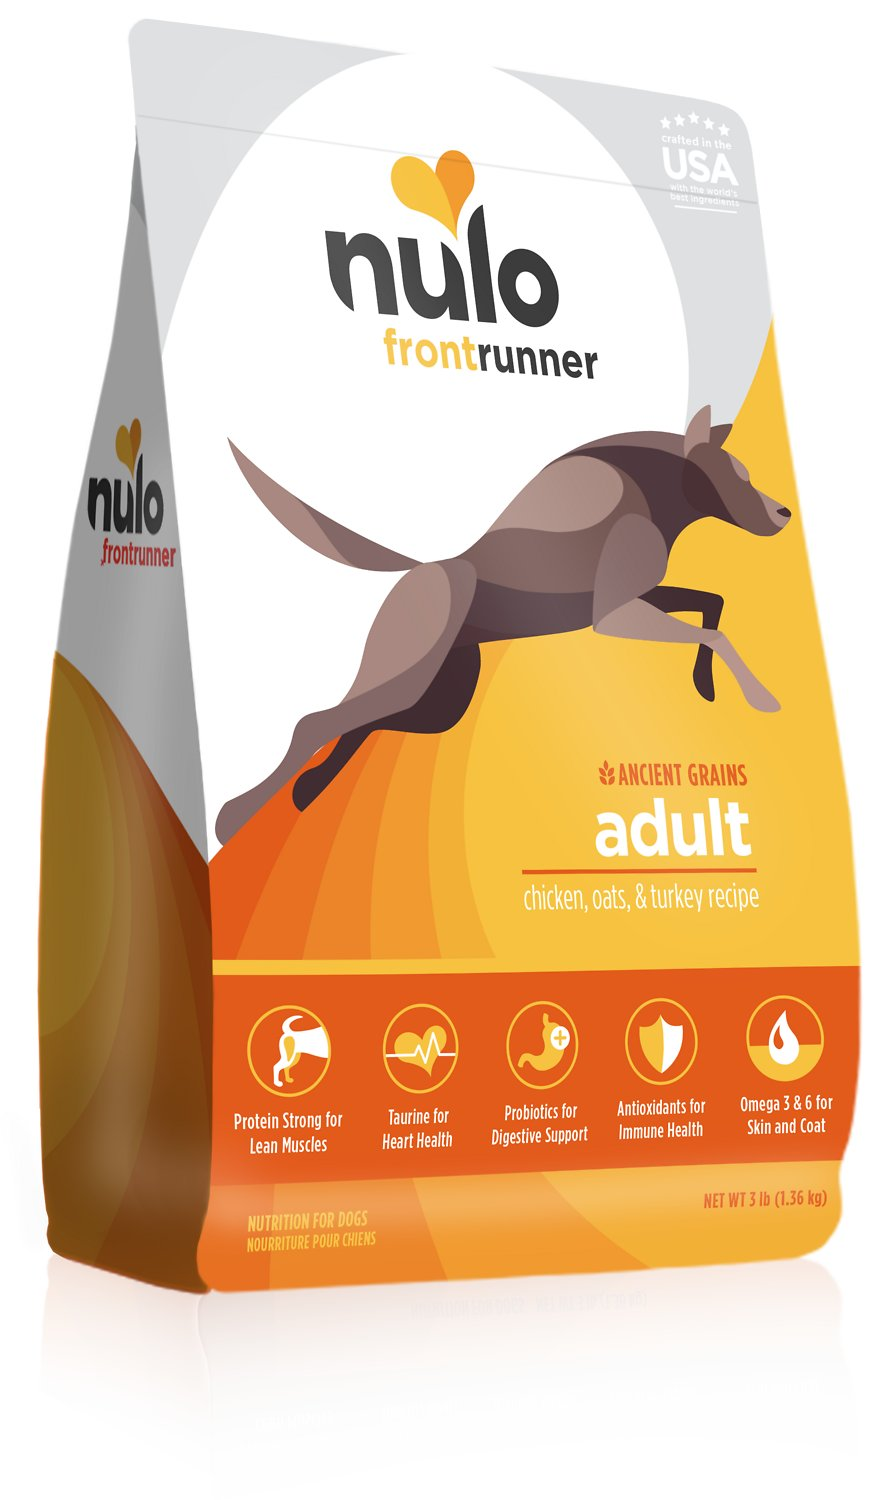 Nulo Frontrunner Ancient Grains Chicken, Oats & Turkey Adult Dry Dog Food, 3-lb